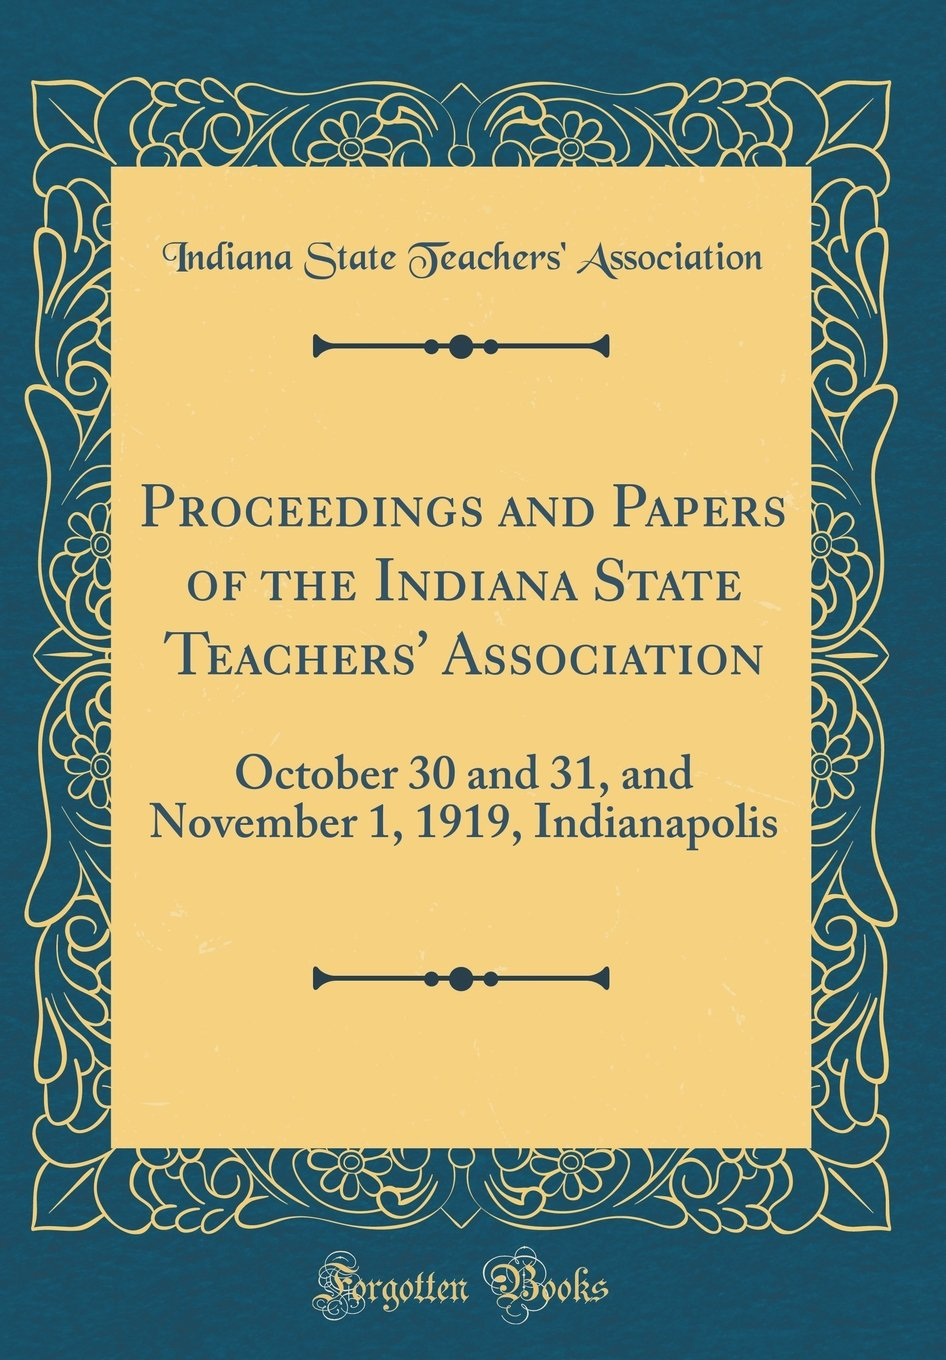 Proceedings and Papers of the Indiana State Teachers' Association: October 30 and 31, and November 1, 1919, Indianapolis (Classic Reprint) PDF ePub book